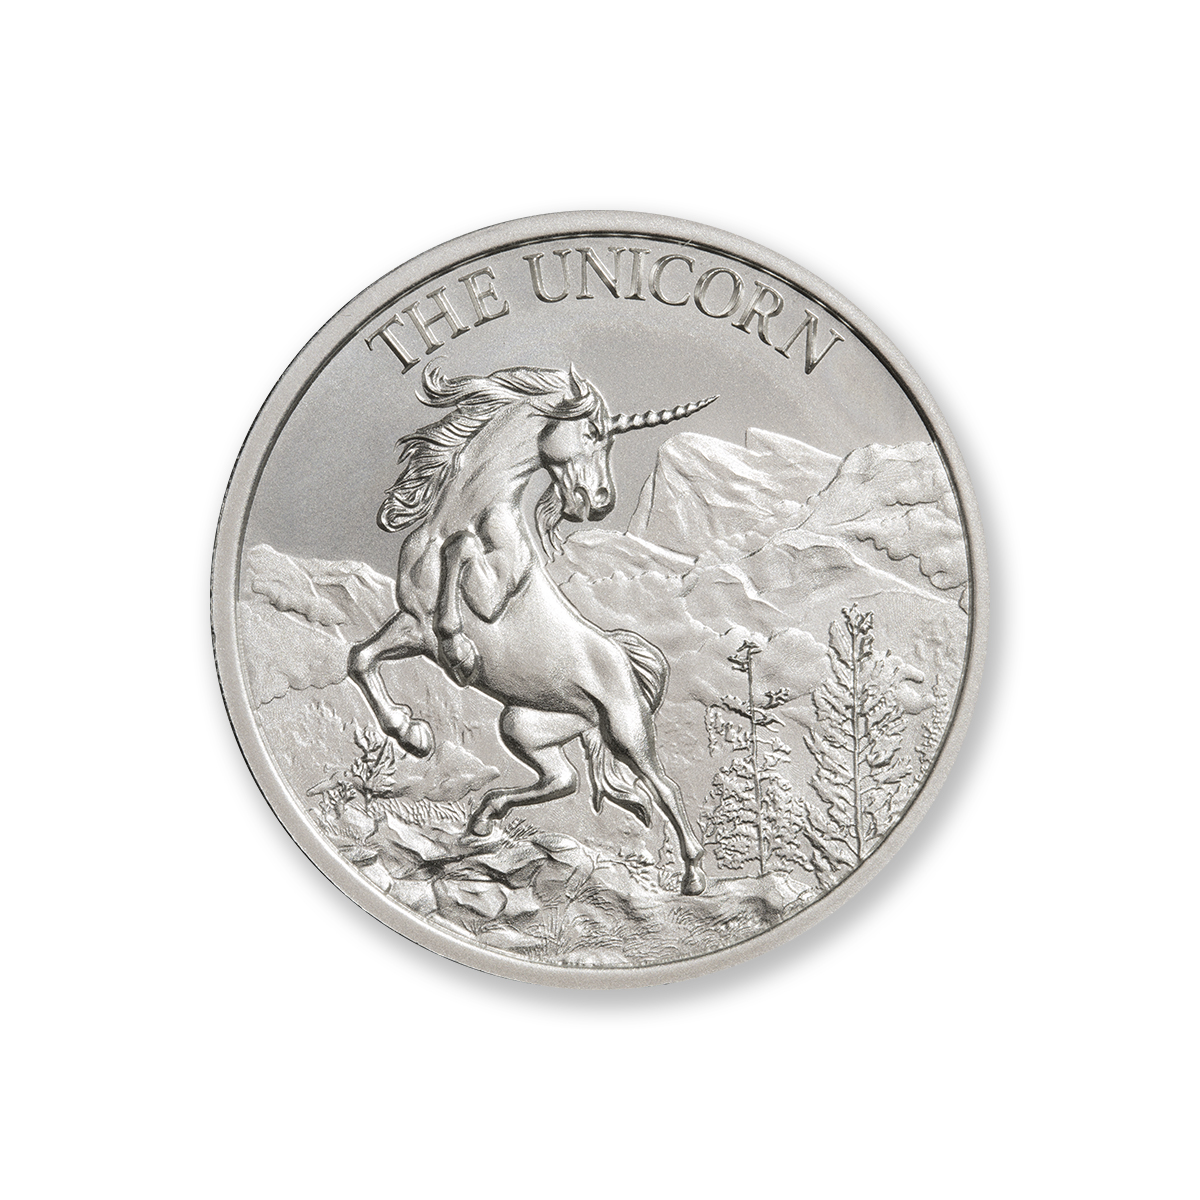 2020 – THE UNICORN – 1 TROY OUNCE – 39MM